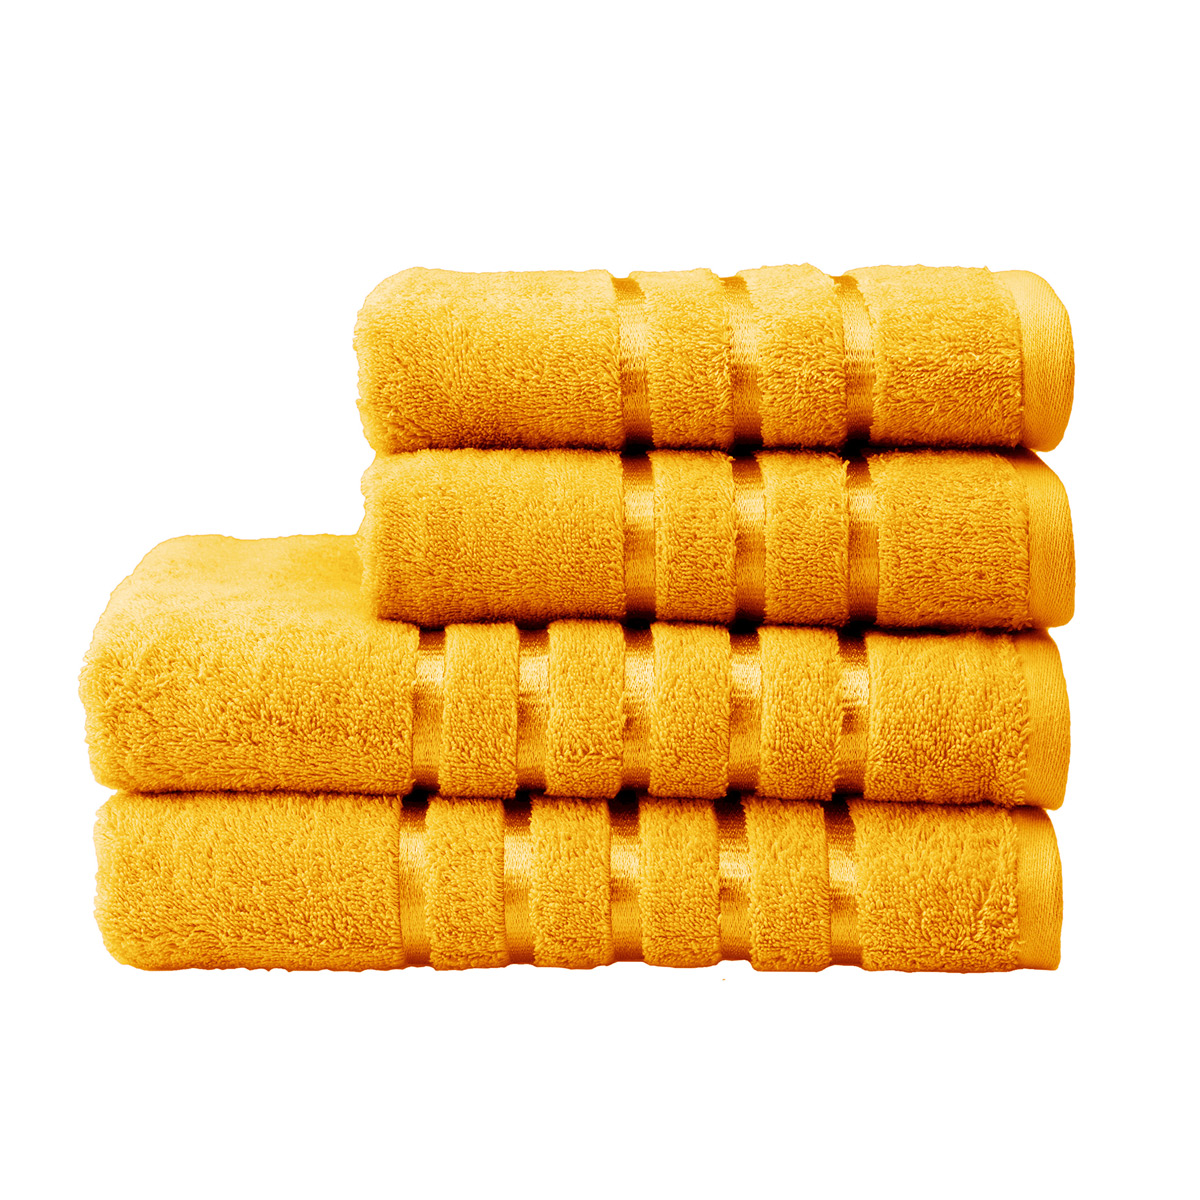 An image of Luxury Lifestyle Kingsley Face Cloth in Mustard (Yellow) by Christy